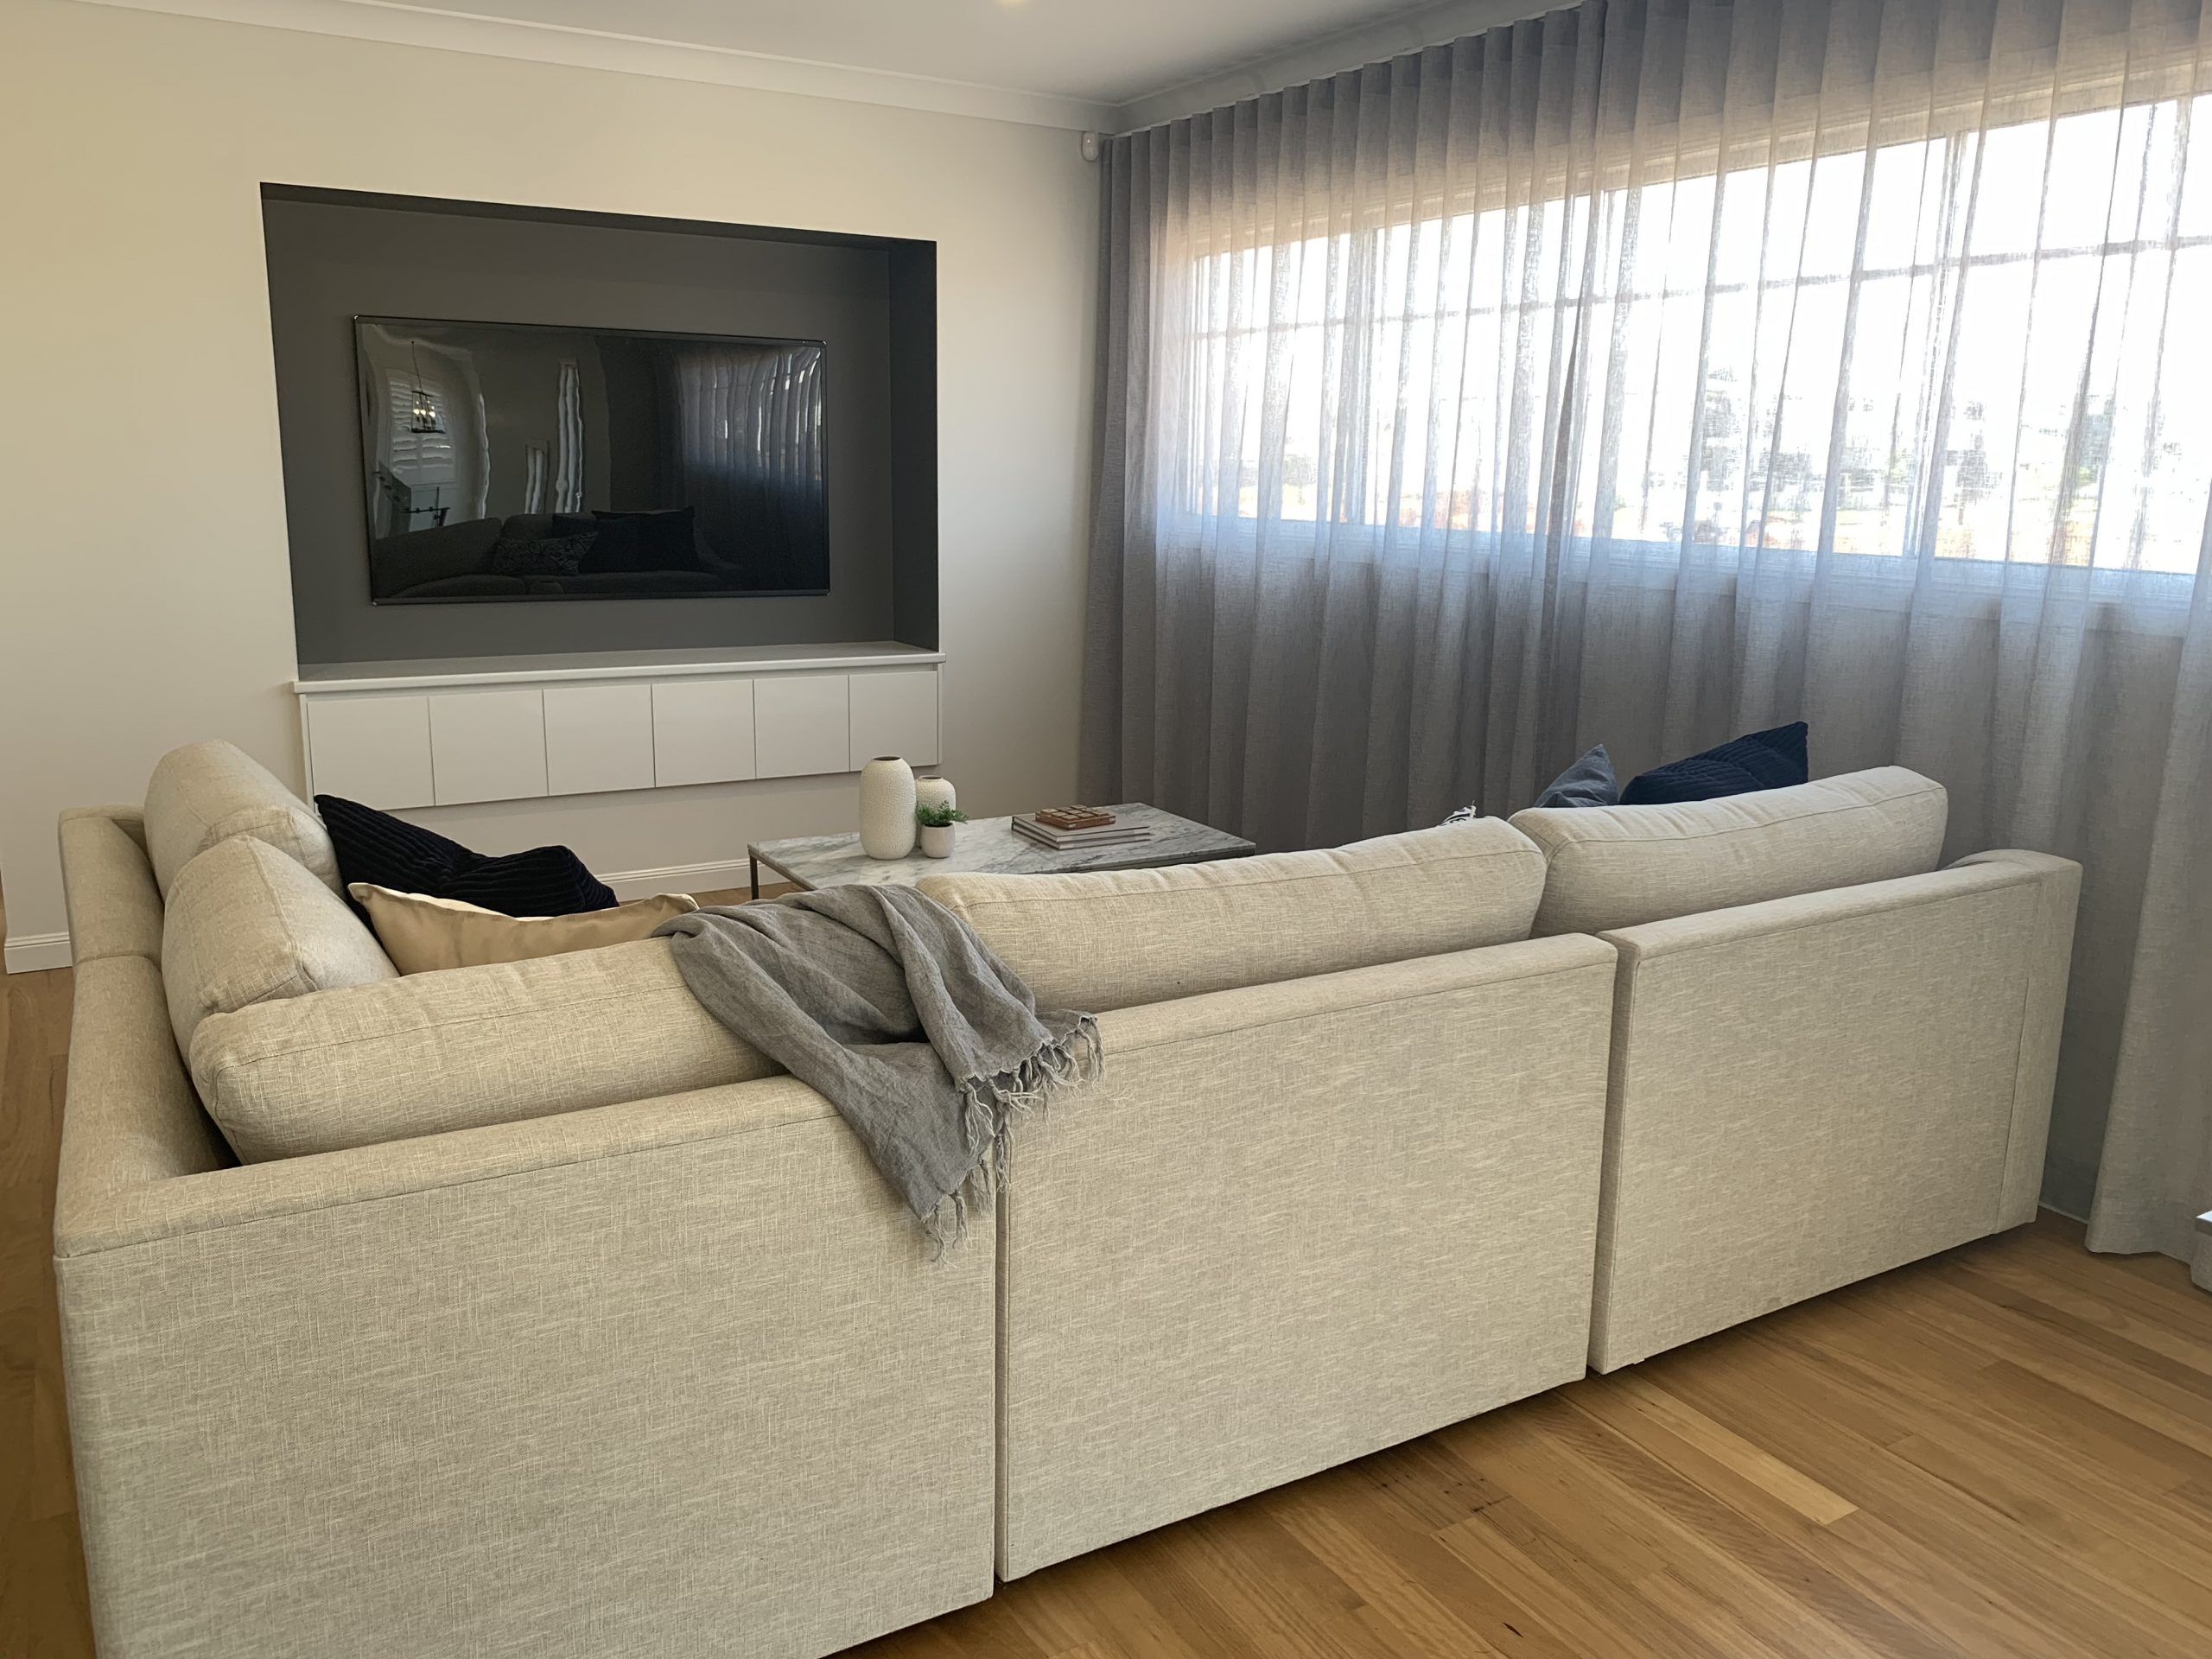 A modern home theatre media room with curtains | Home theatre curtains blog featured image